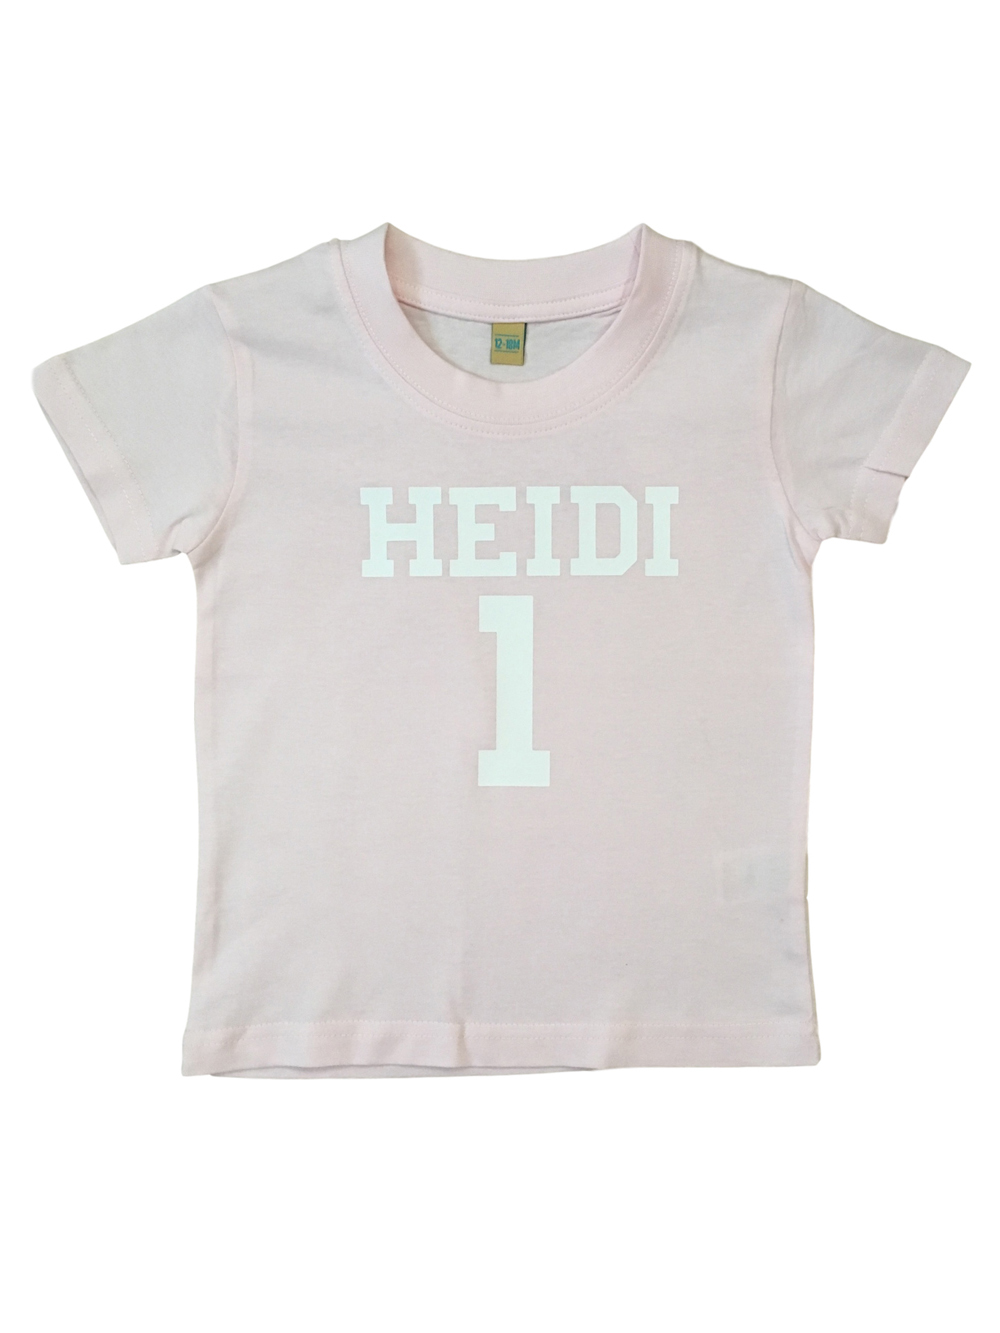 Name And Number Tshirt – Girls